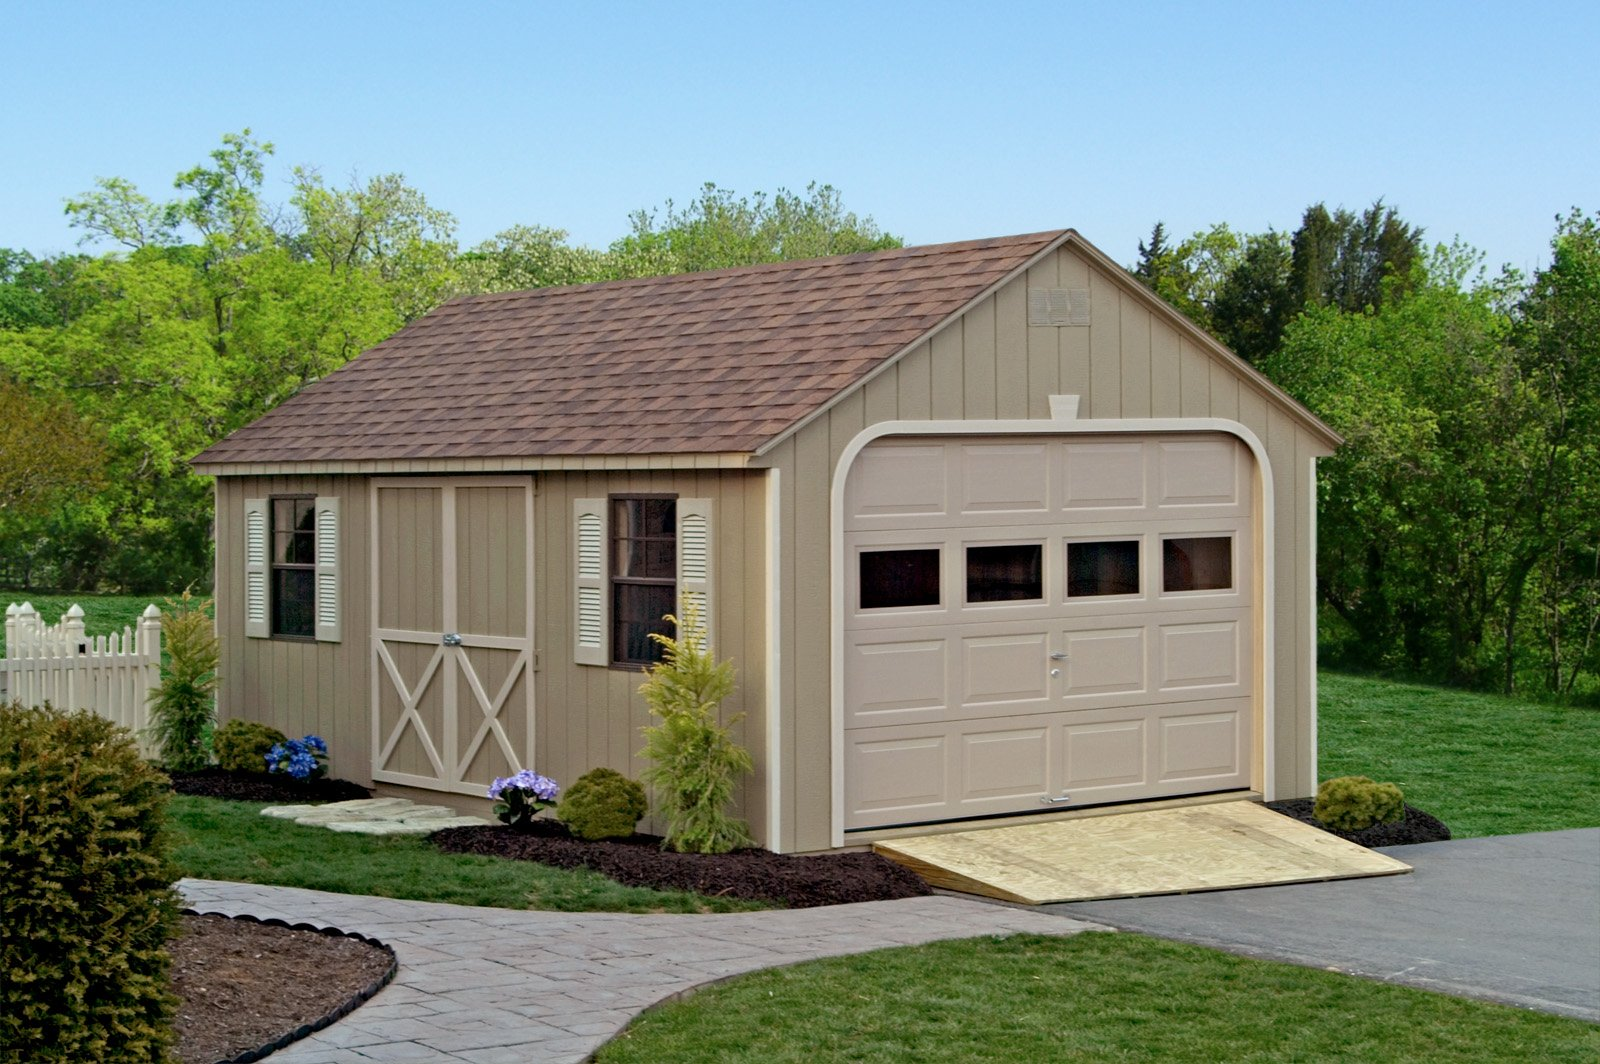 Cape Cod Garage 12x20 The Shed Haus